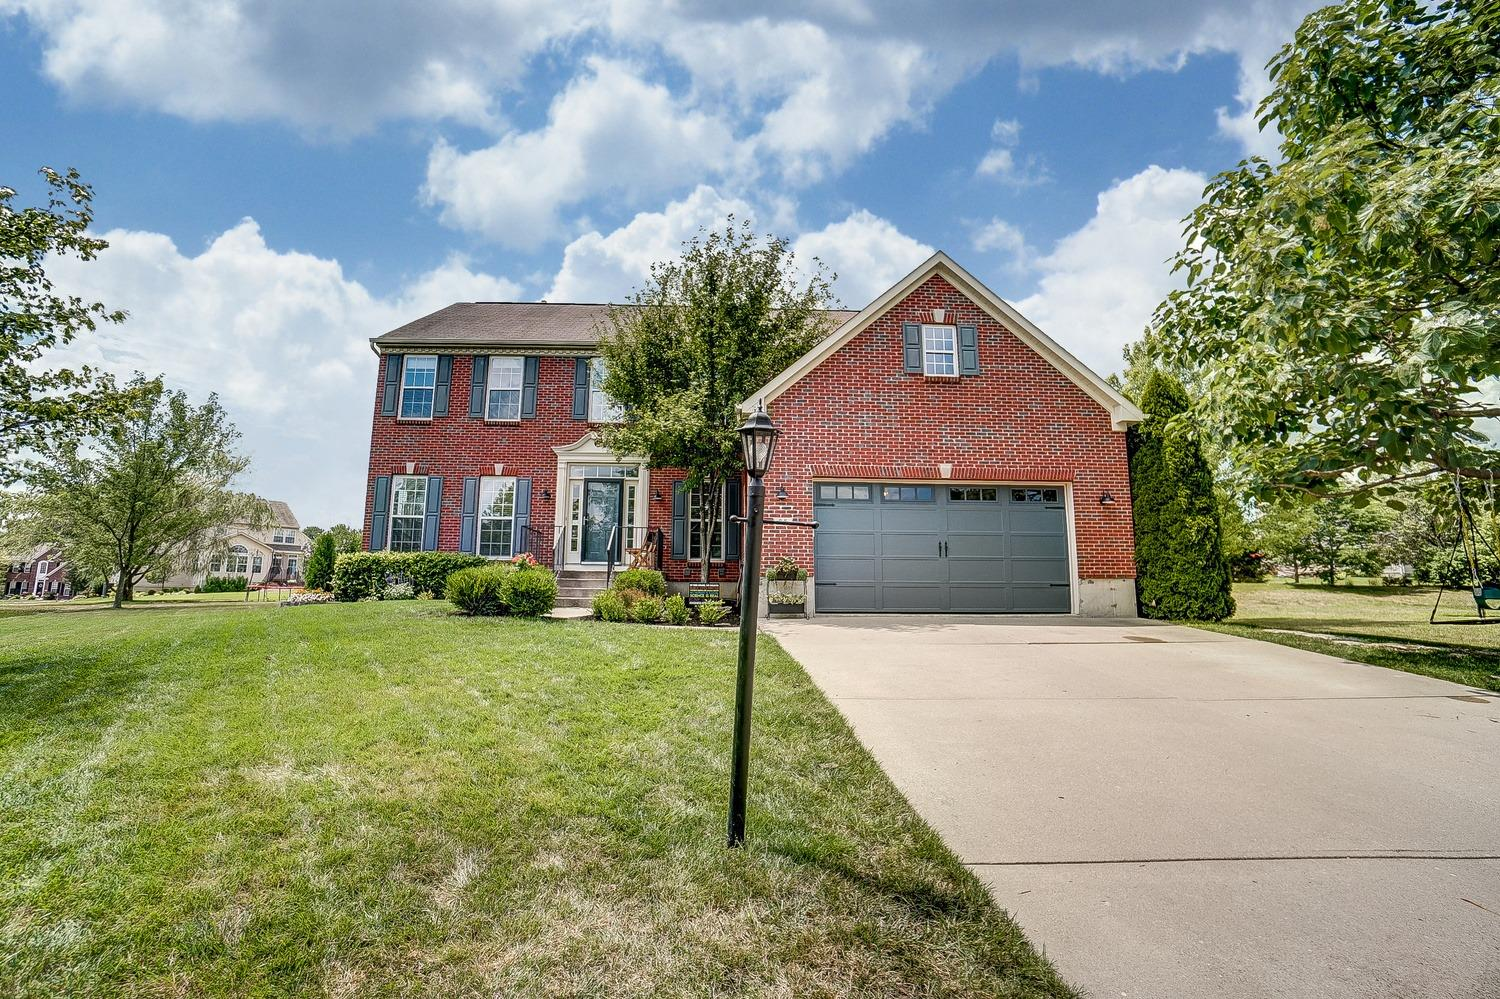 Property for sale at 95 Clevenger Court, Springboro,  Ohio 45066